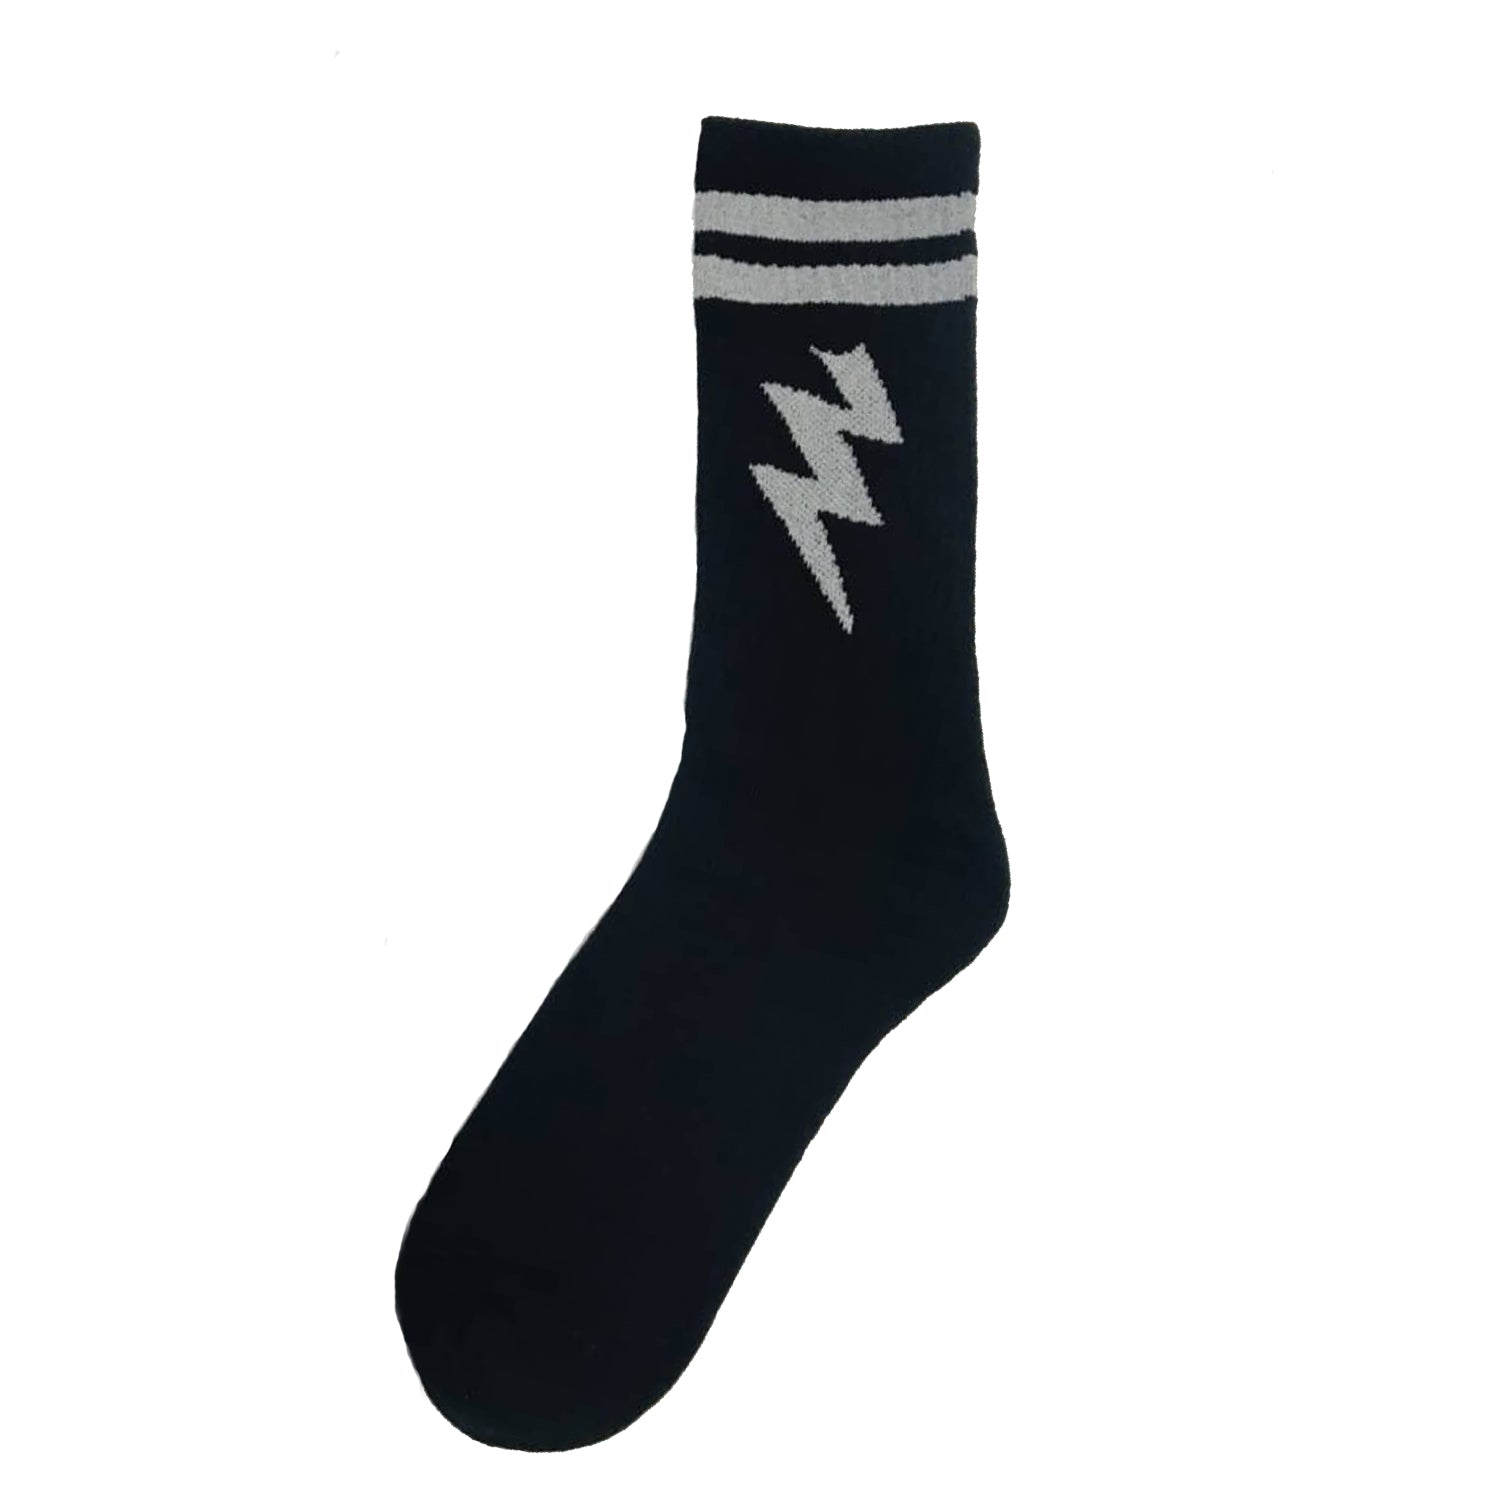 3M Reflective Socks - Gifts of Fortune